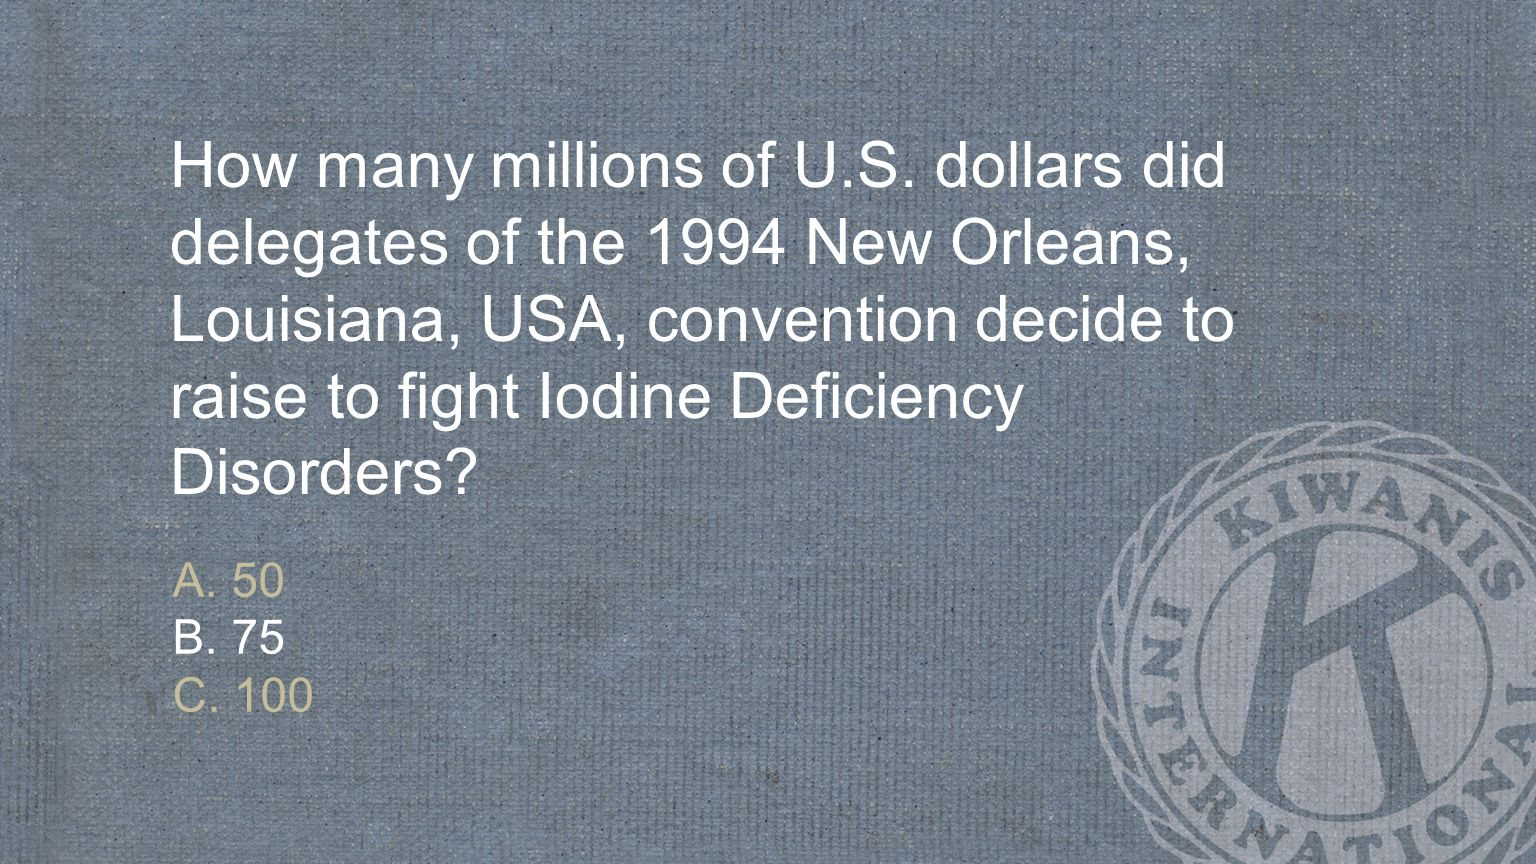 How many millions of U.S. dollars did delegates of the 1994 New Orleans, Louisiana, USA, convention decide to raise to fight Iodine Deficiency Disorders